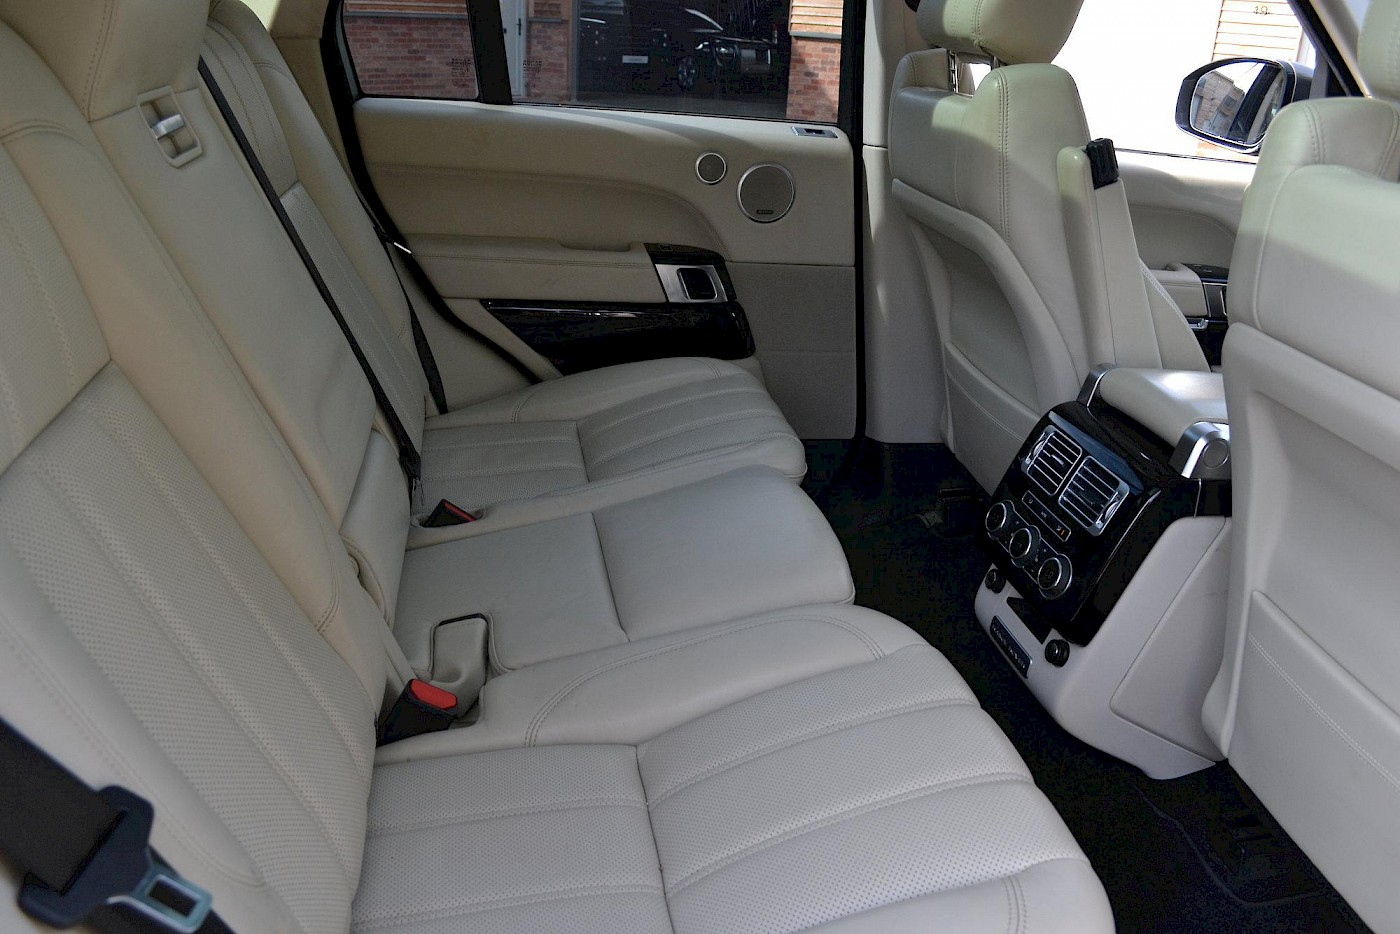 2013/13 Land Rover Range Rover Vogue 4.4 17